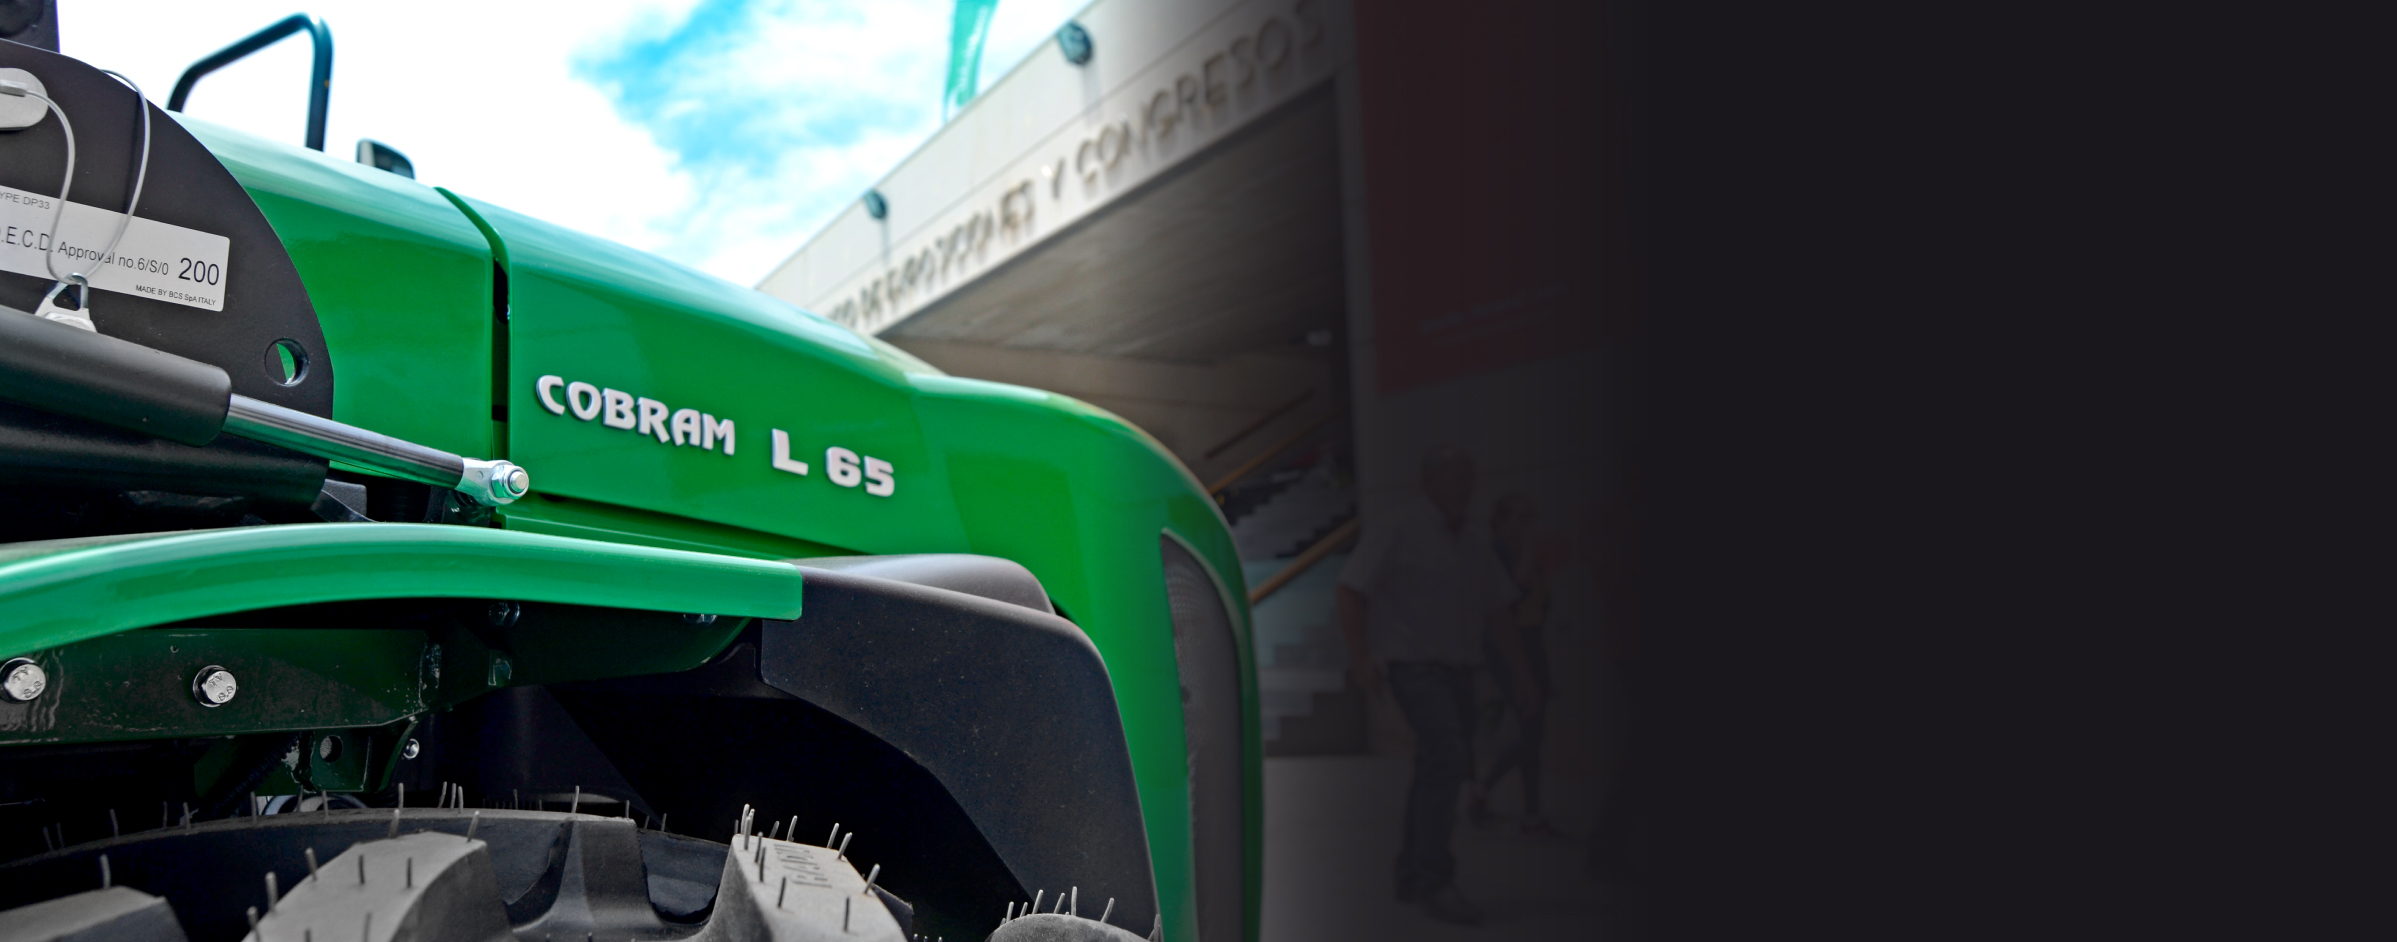 Cobram L65 en Infoagro exhibition